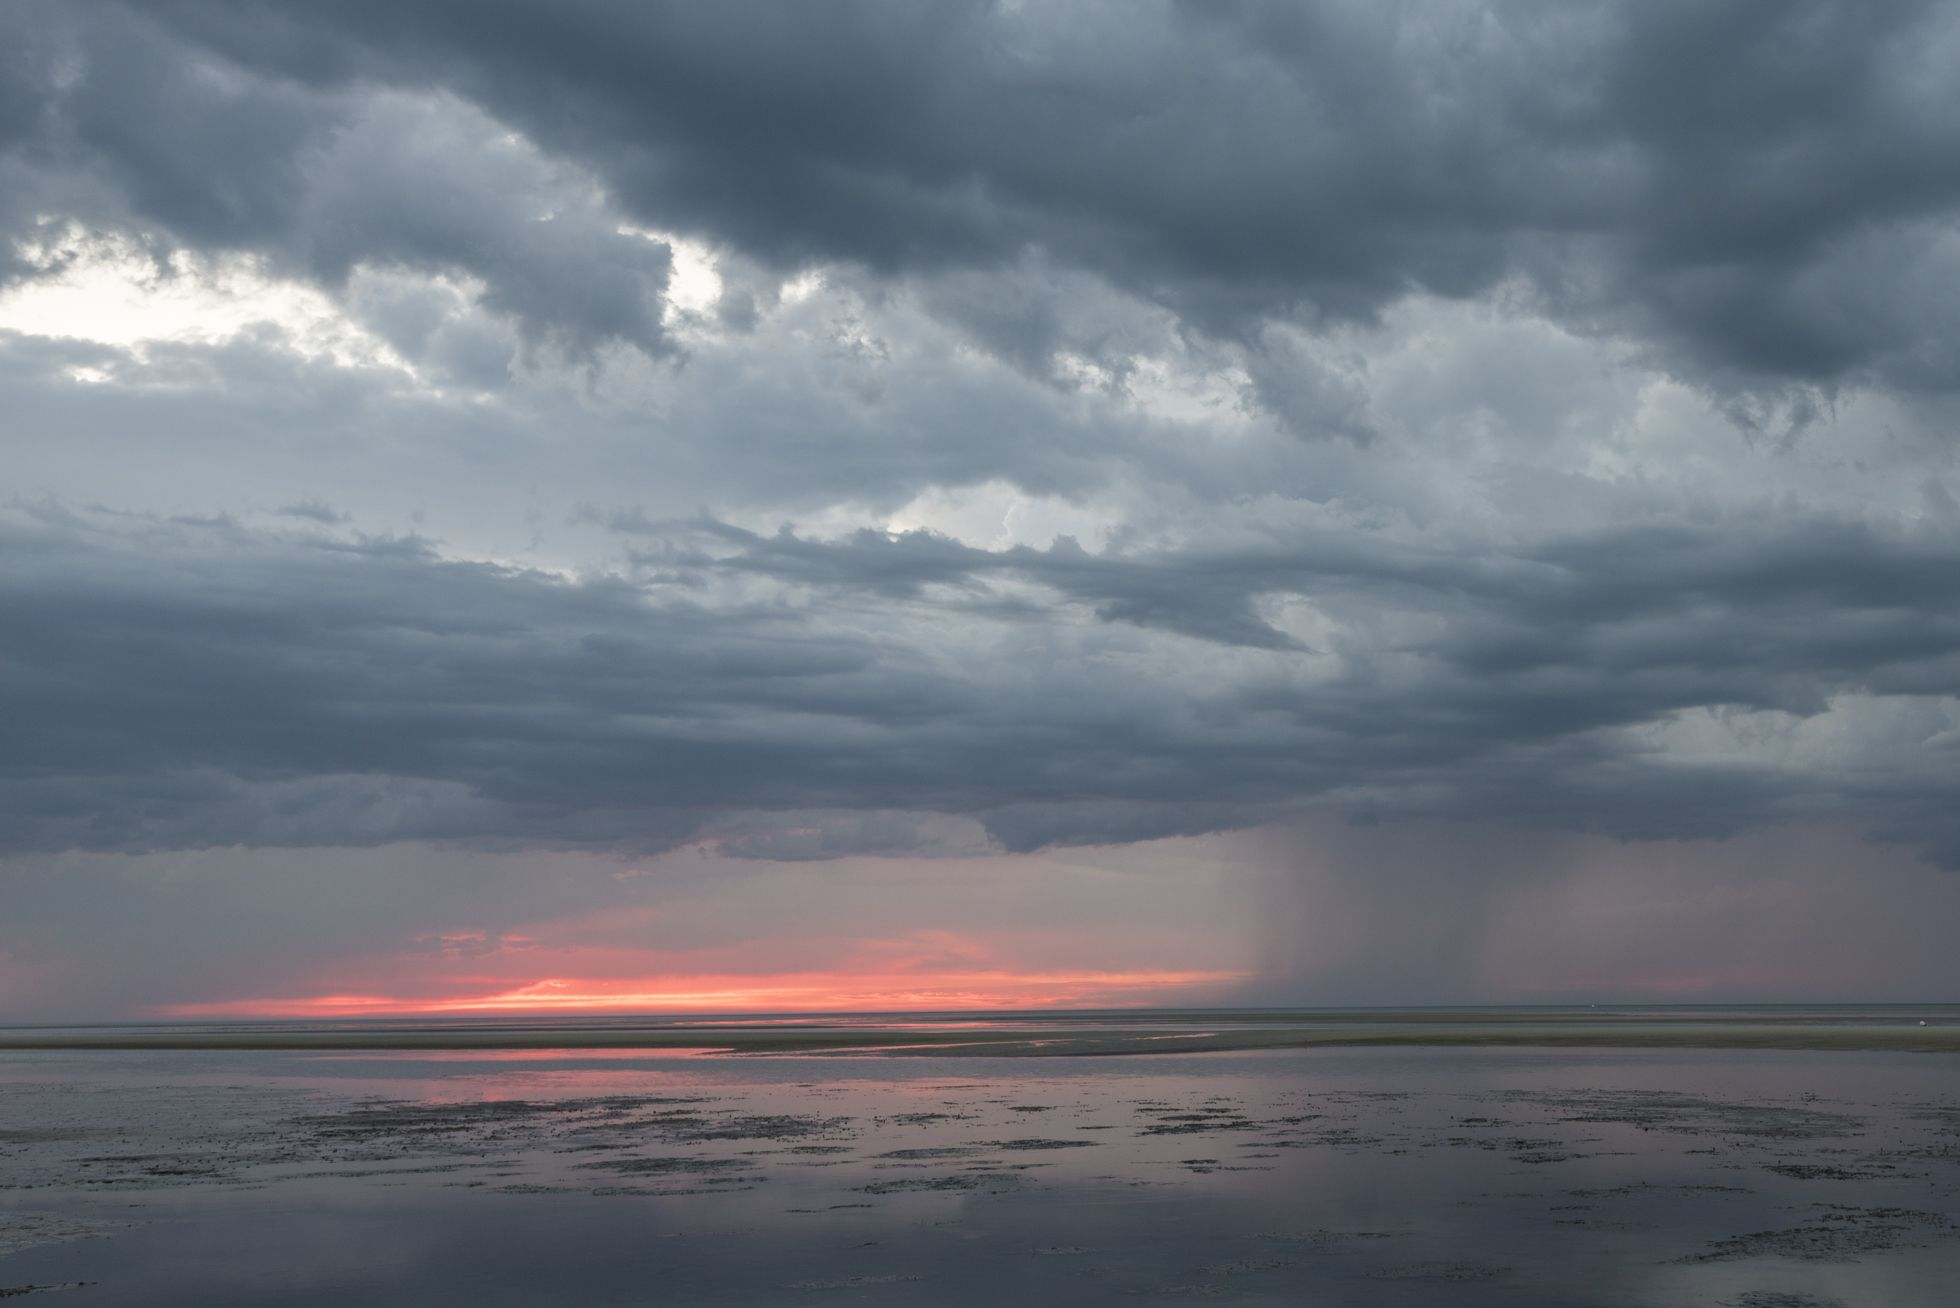 Cape Cod Bay Seascapes | Steven Koppel Photography